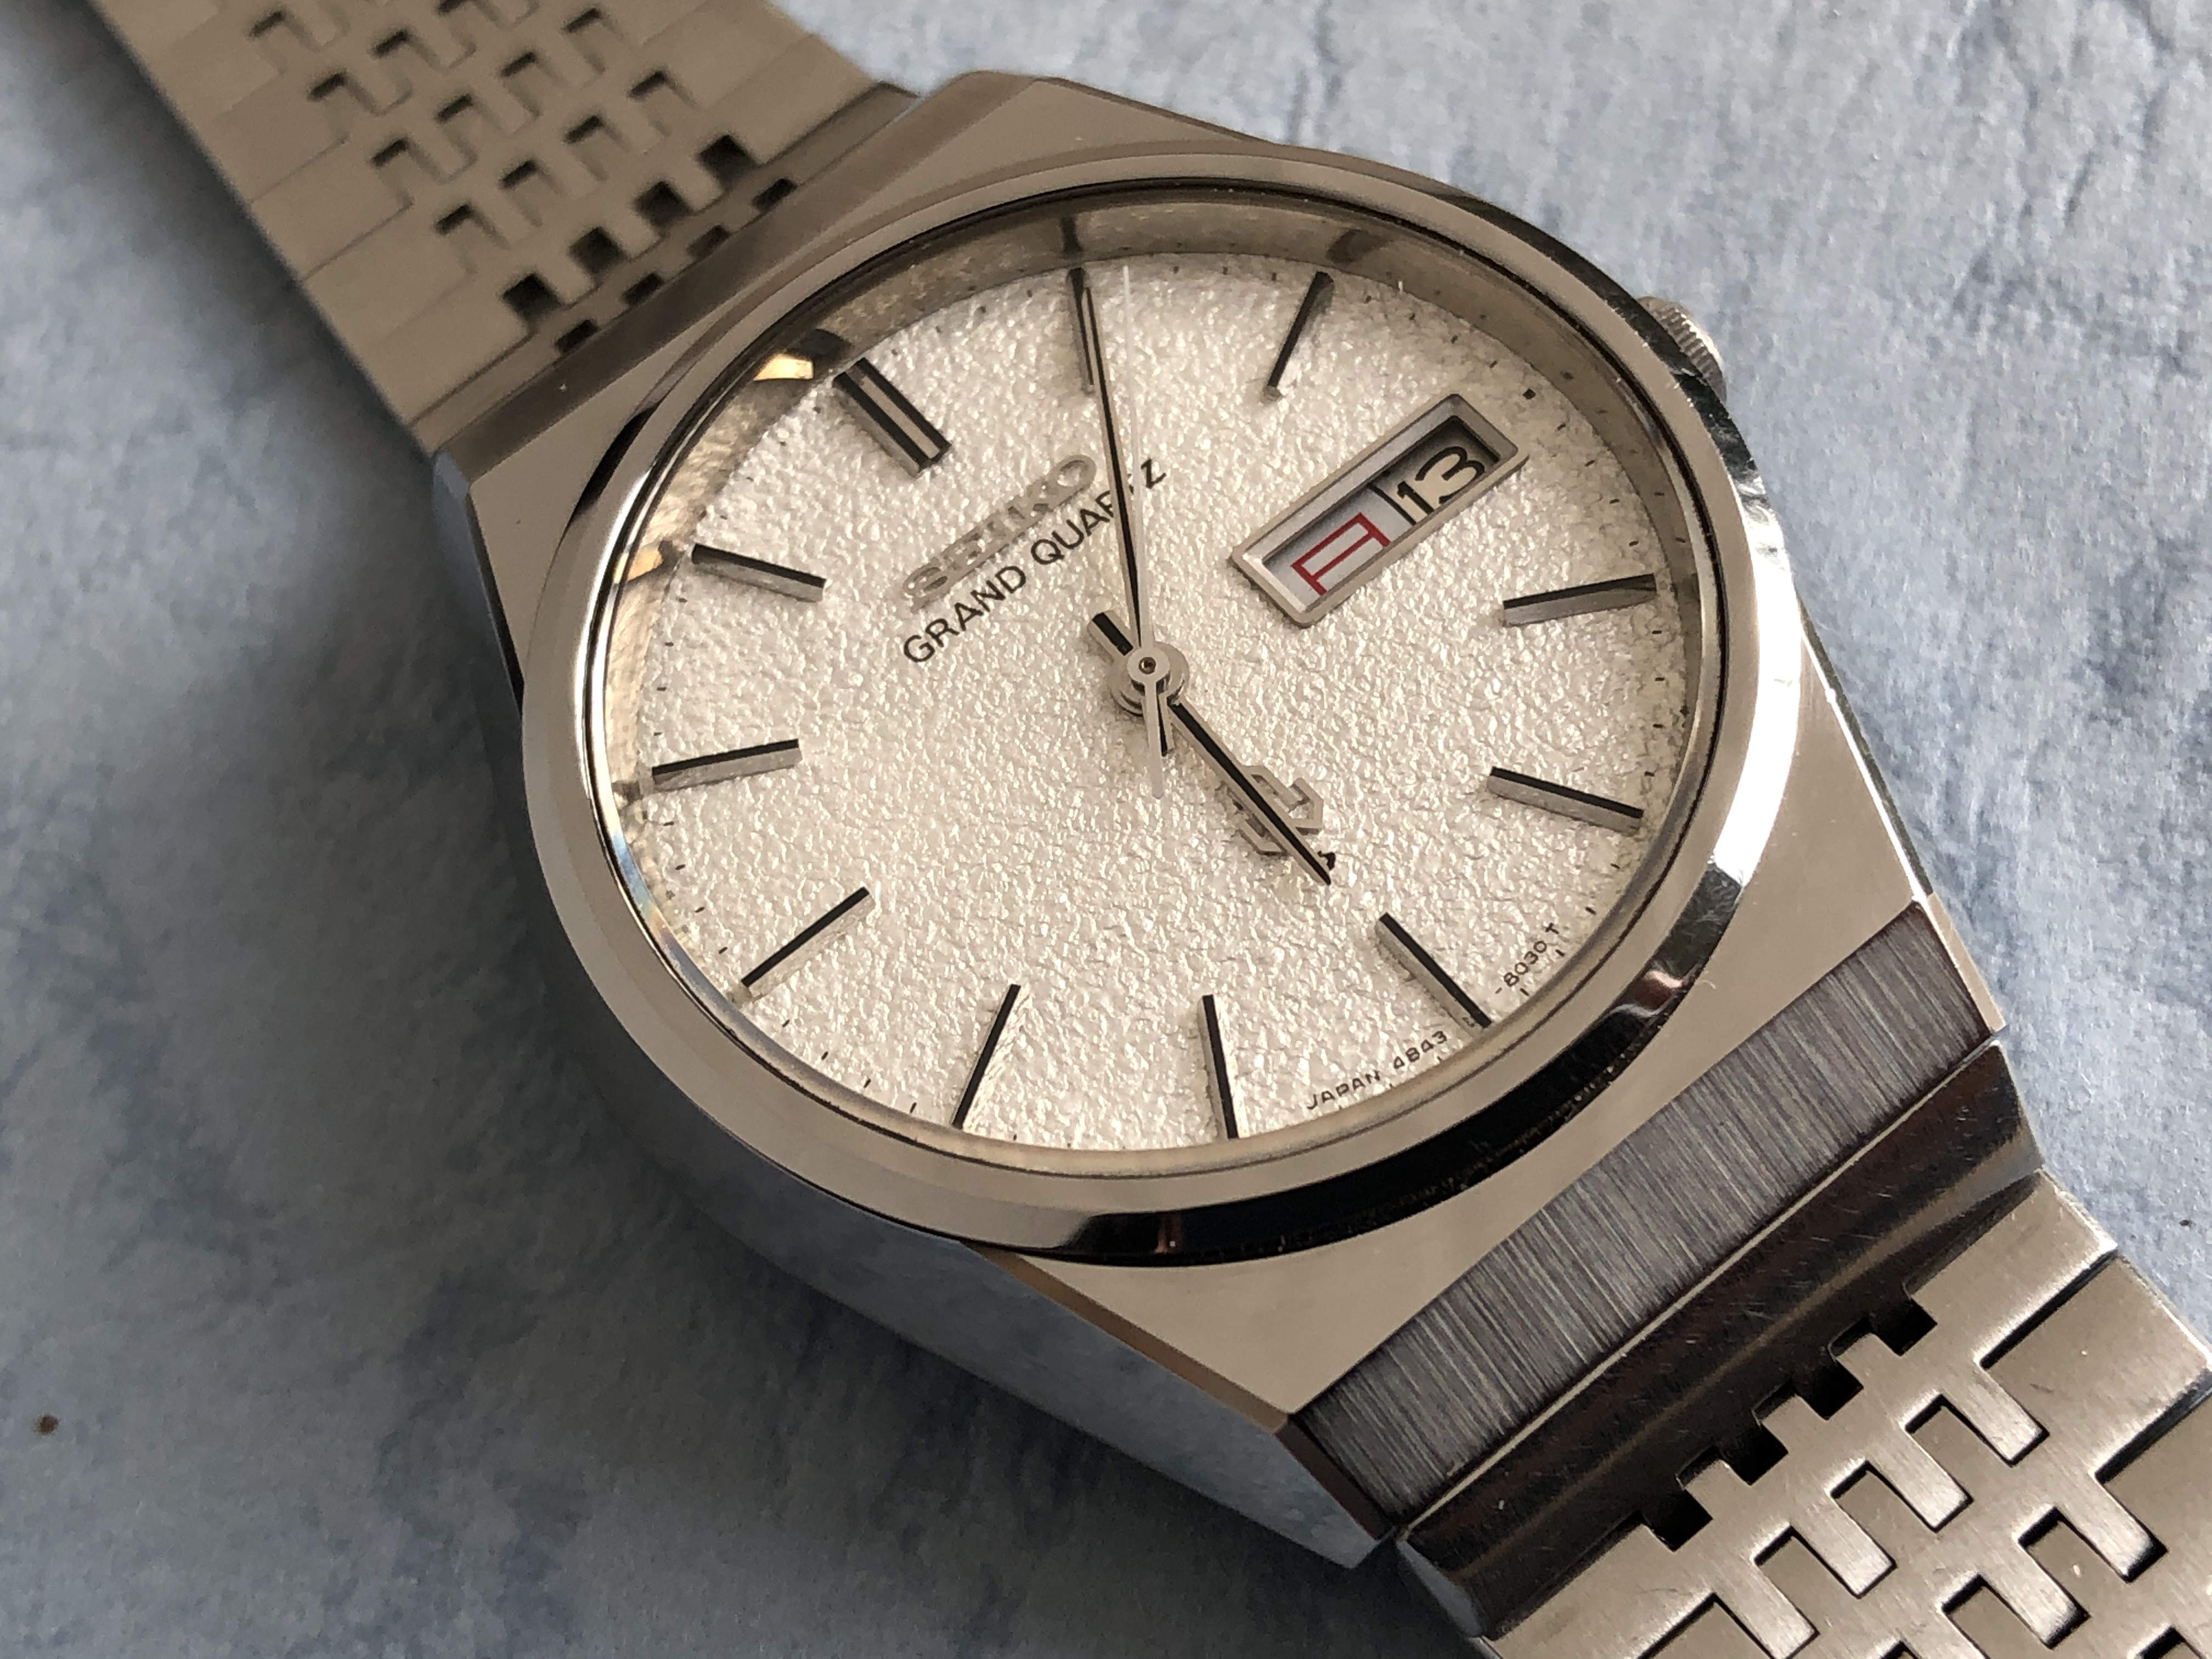 Seiko Grand Quartz 4843-8100 (Sold)